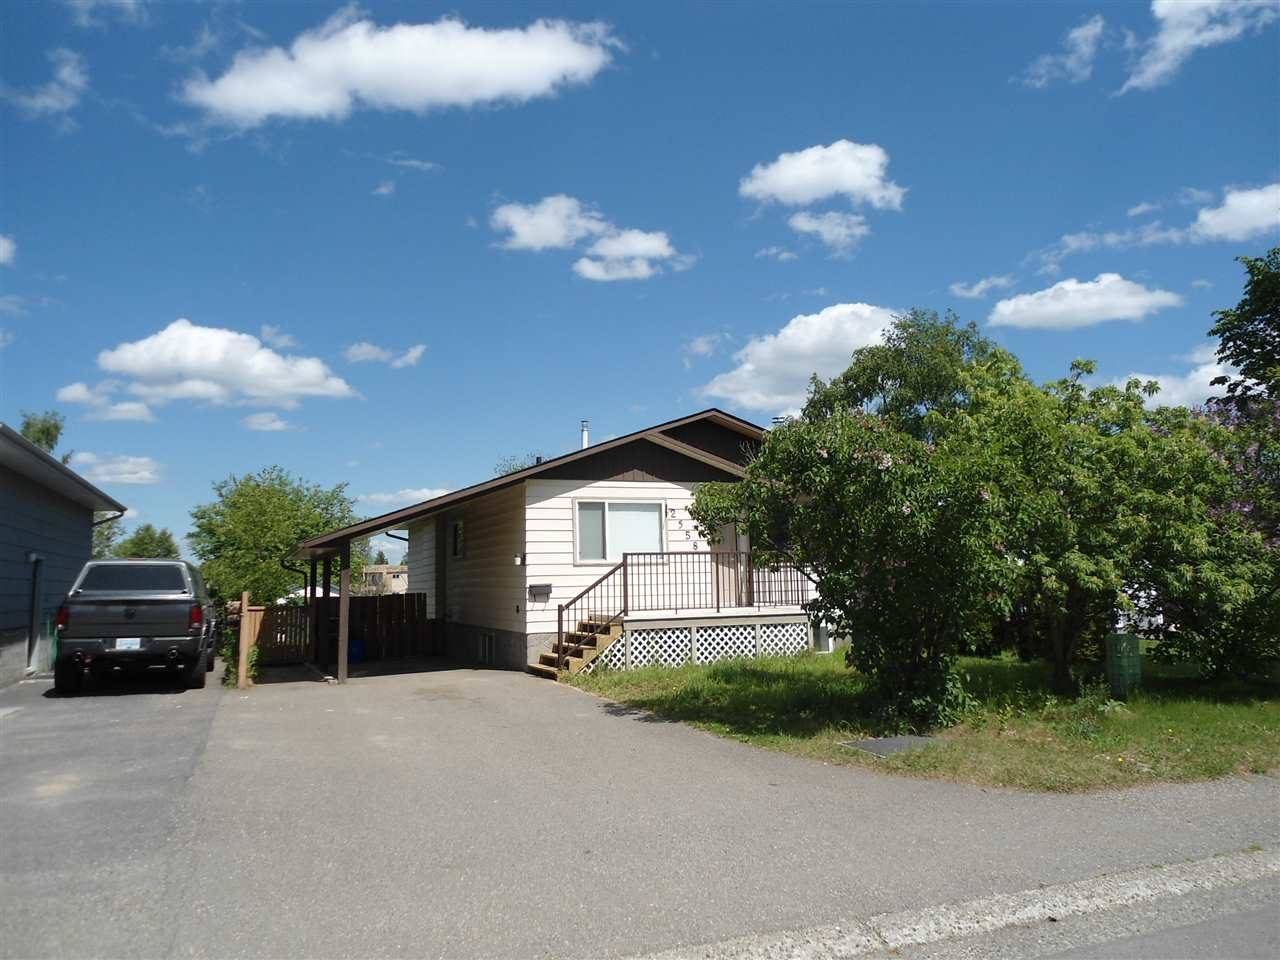 Main Photo: 2558 COYLE Street in Prince George: Pinecone House for sale (PG City West (Zone 71))  : MLS® # R2069598